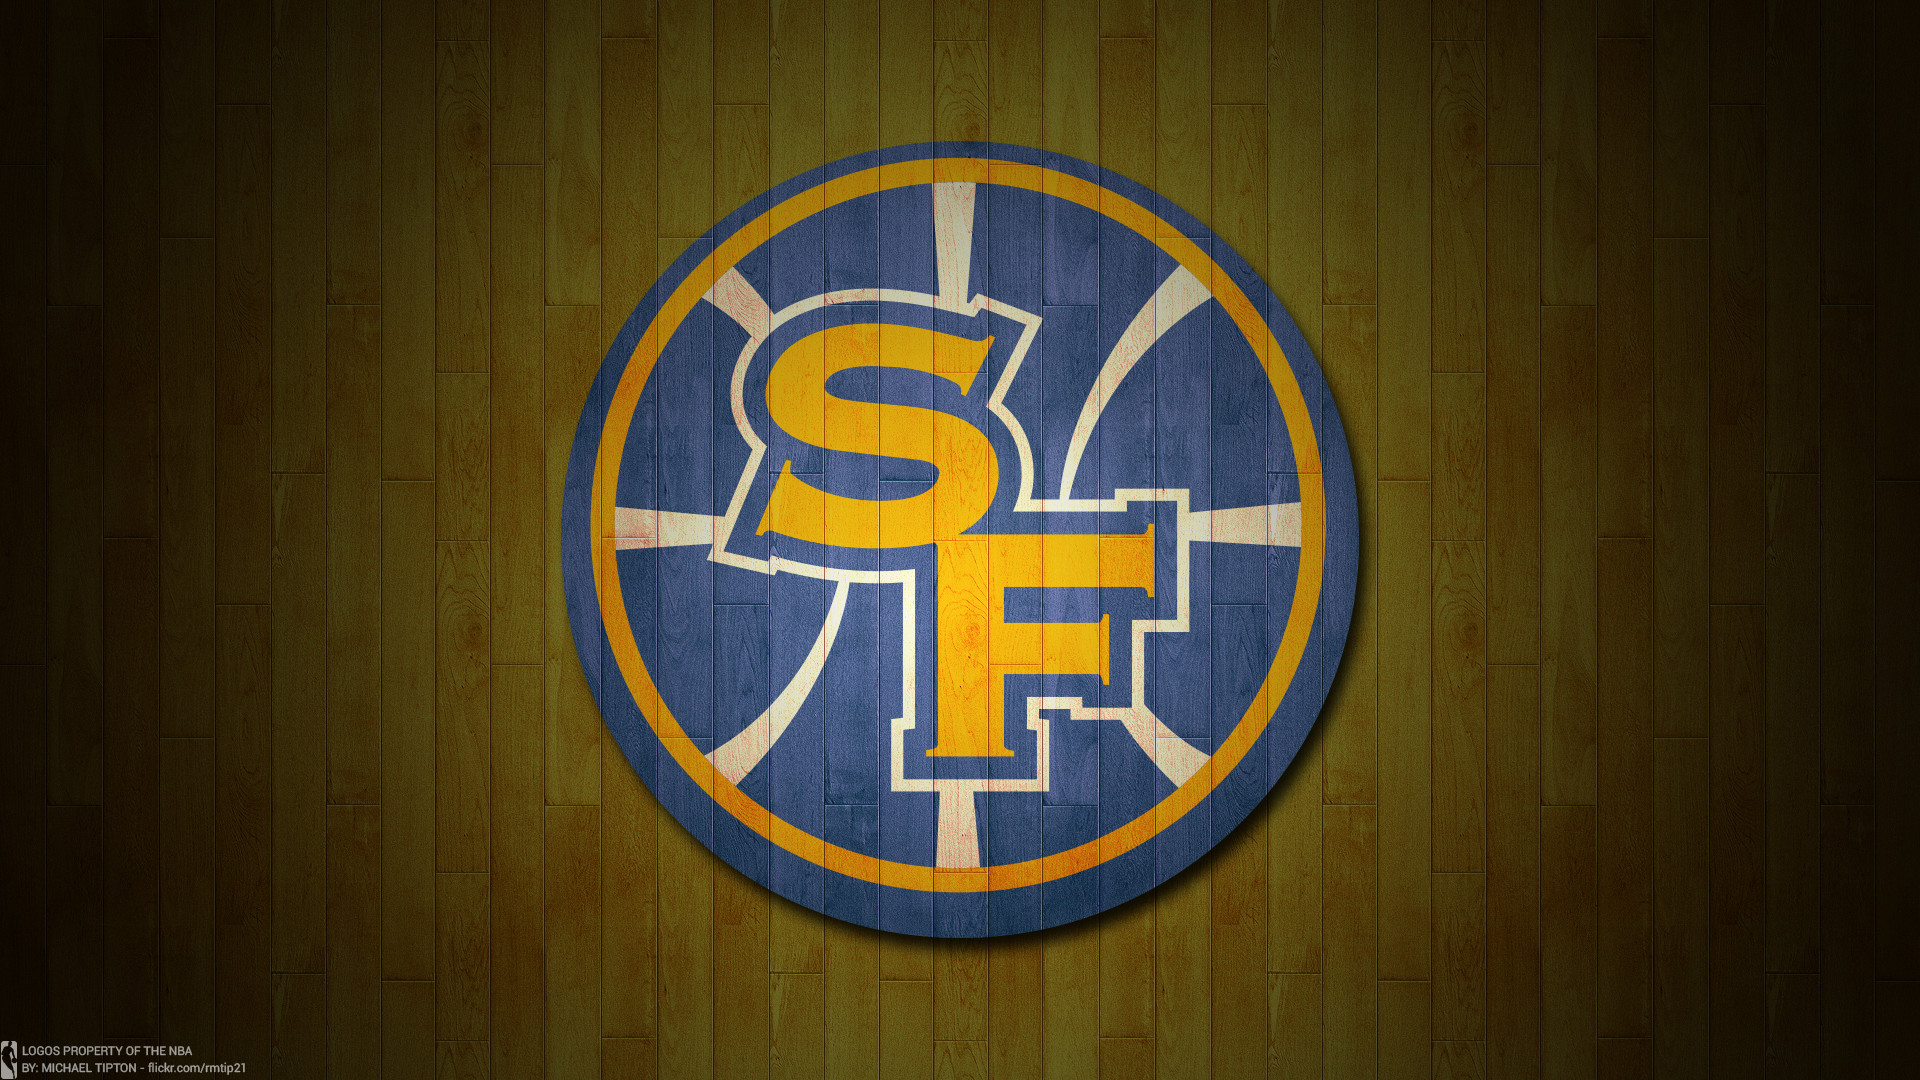 Golden State Warriors Wallpaper Android Wallpaper for Mobile